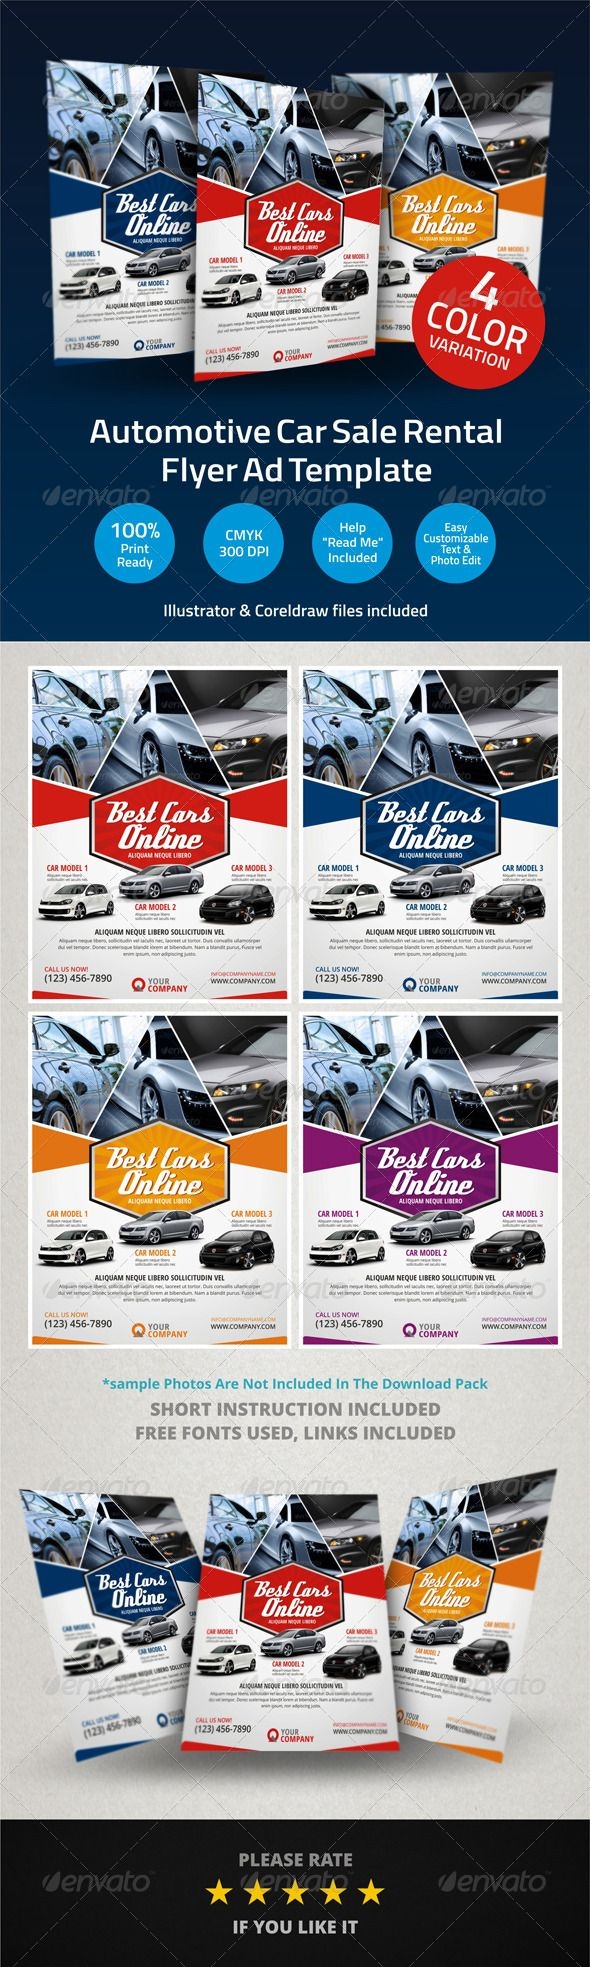 Car For Sale Flyer Dwayne Johnson Djjohnson1017 On Pinterest